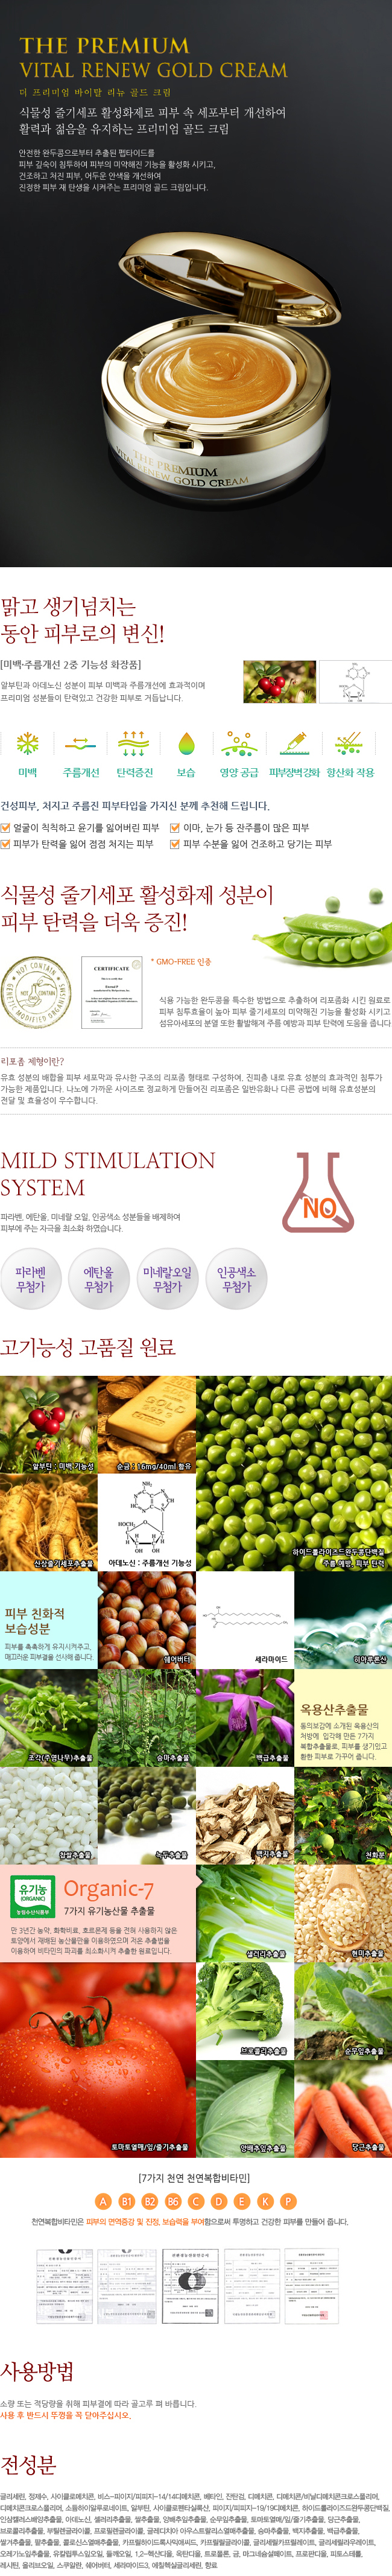 Credit: Seed & Tree Korea website